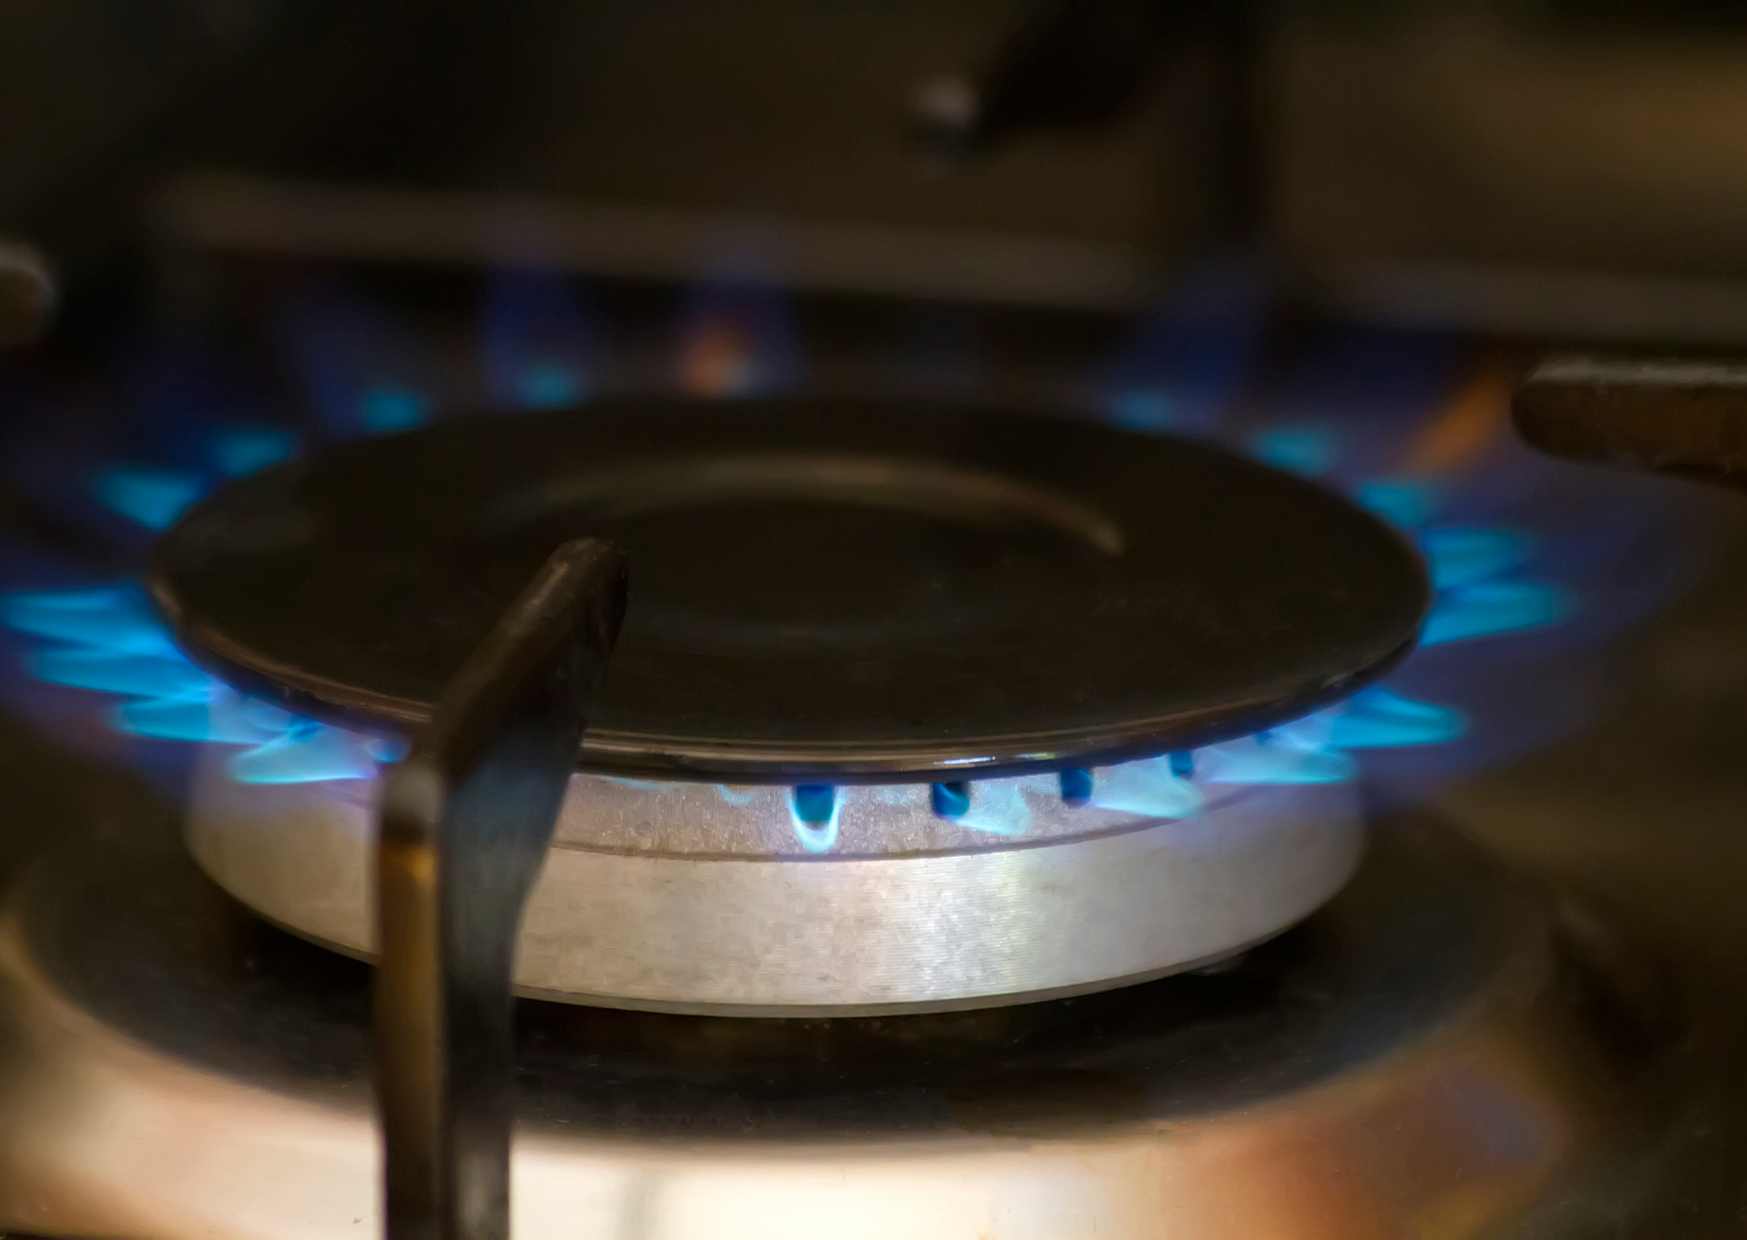 Photo of stove burner coming out heat